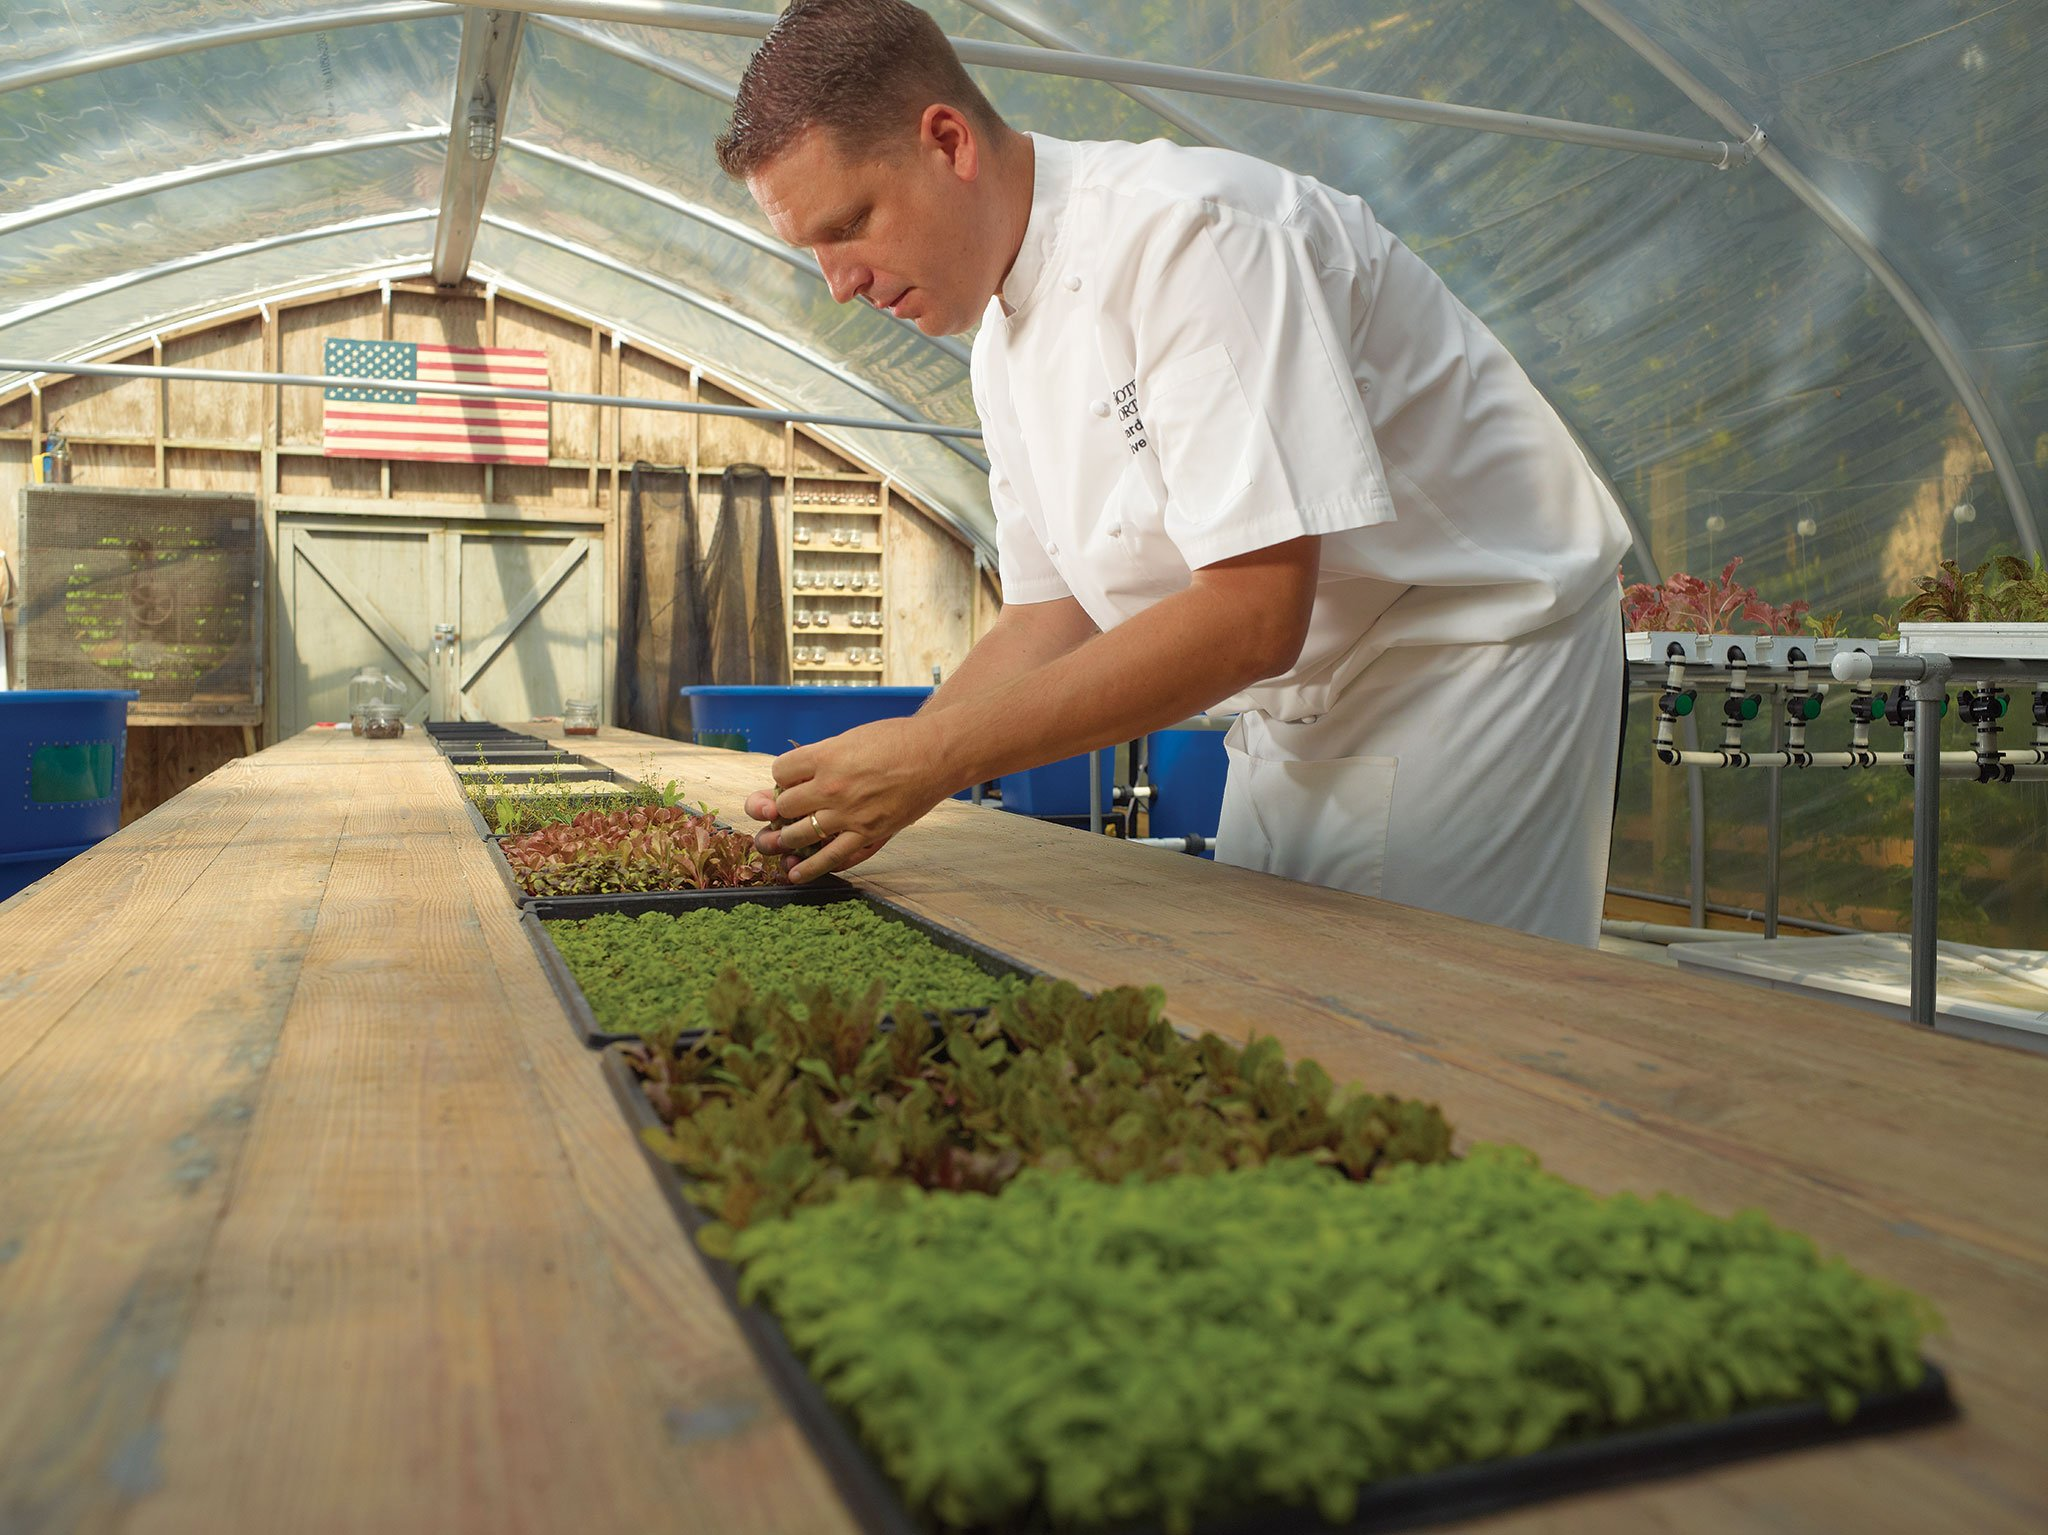 Executive chef Daven Wardynski inside the greenhouse at the Omni Amelia Island's Sprouting Project.